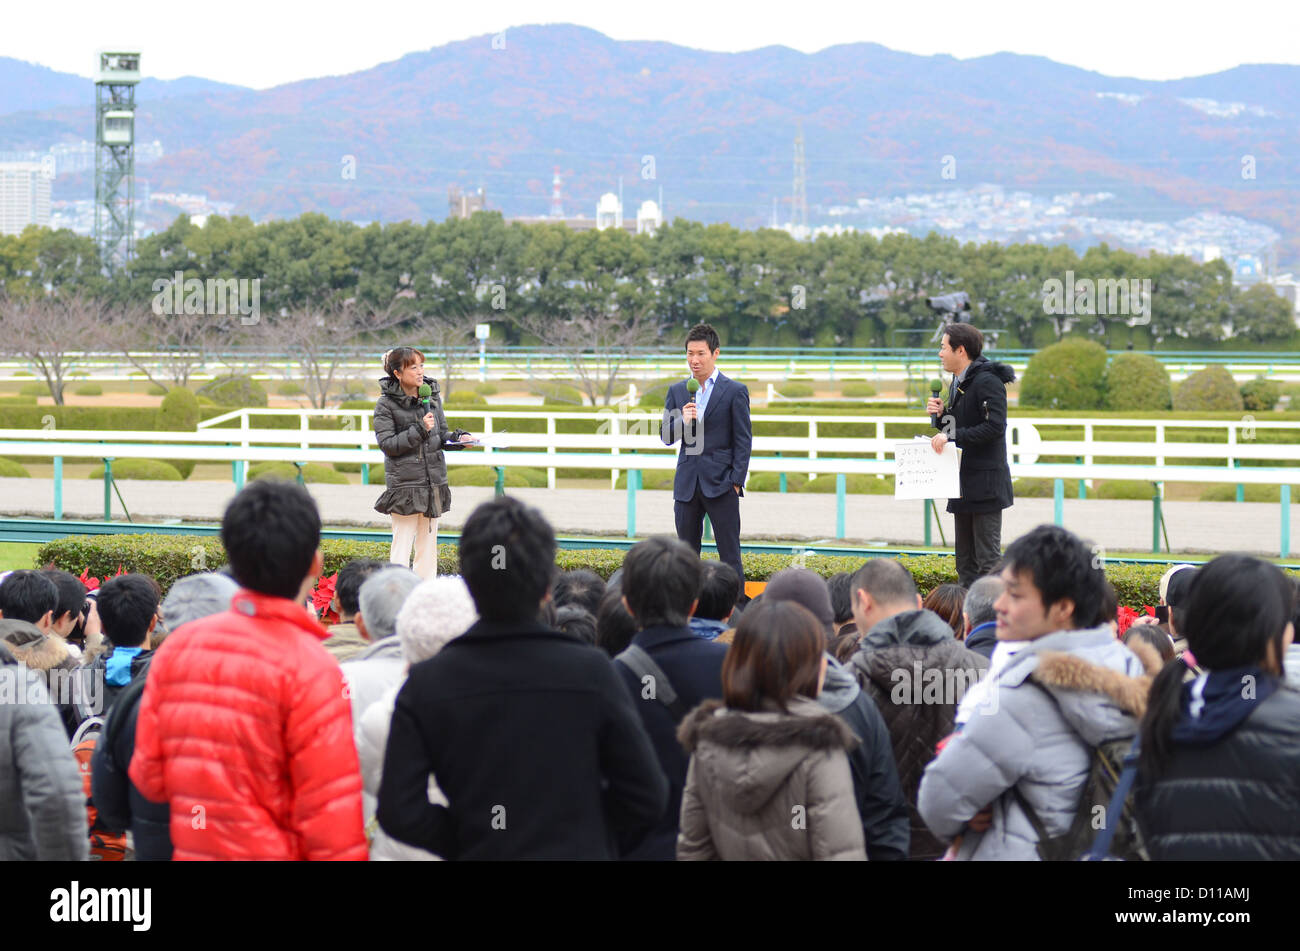 Japanese racing driver Kamui Kobayashi speaks during a special appearance at Hanshin racecourse in Japan on 2nd - Stock Image